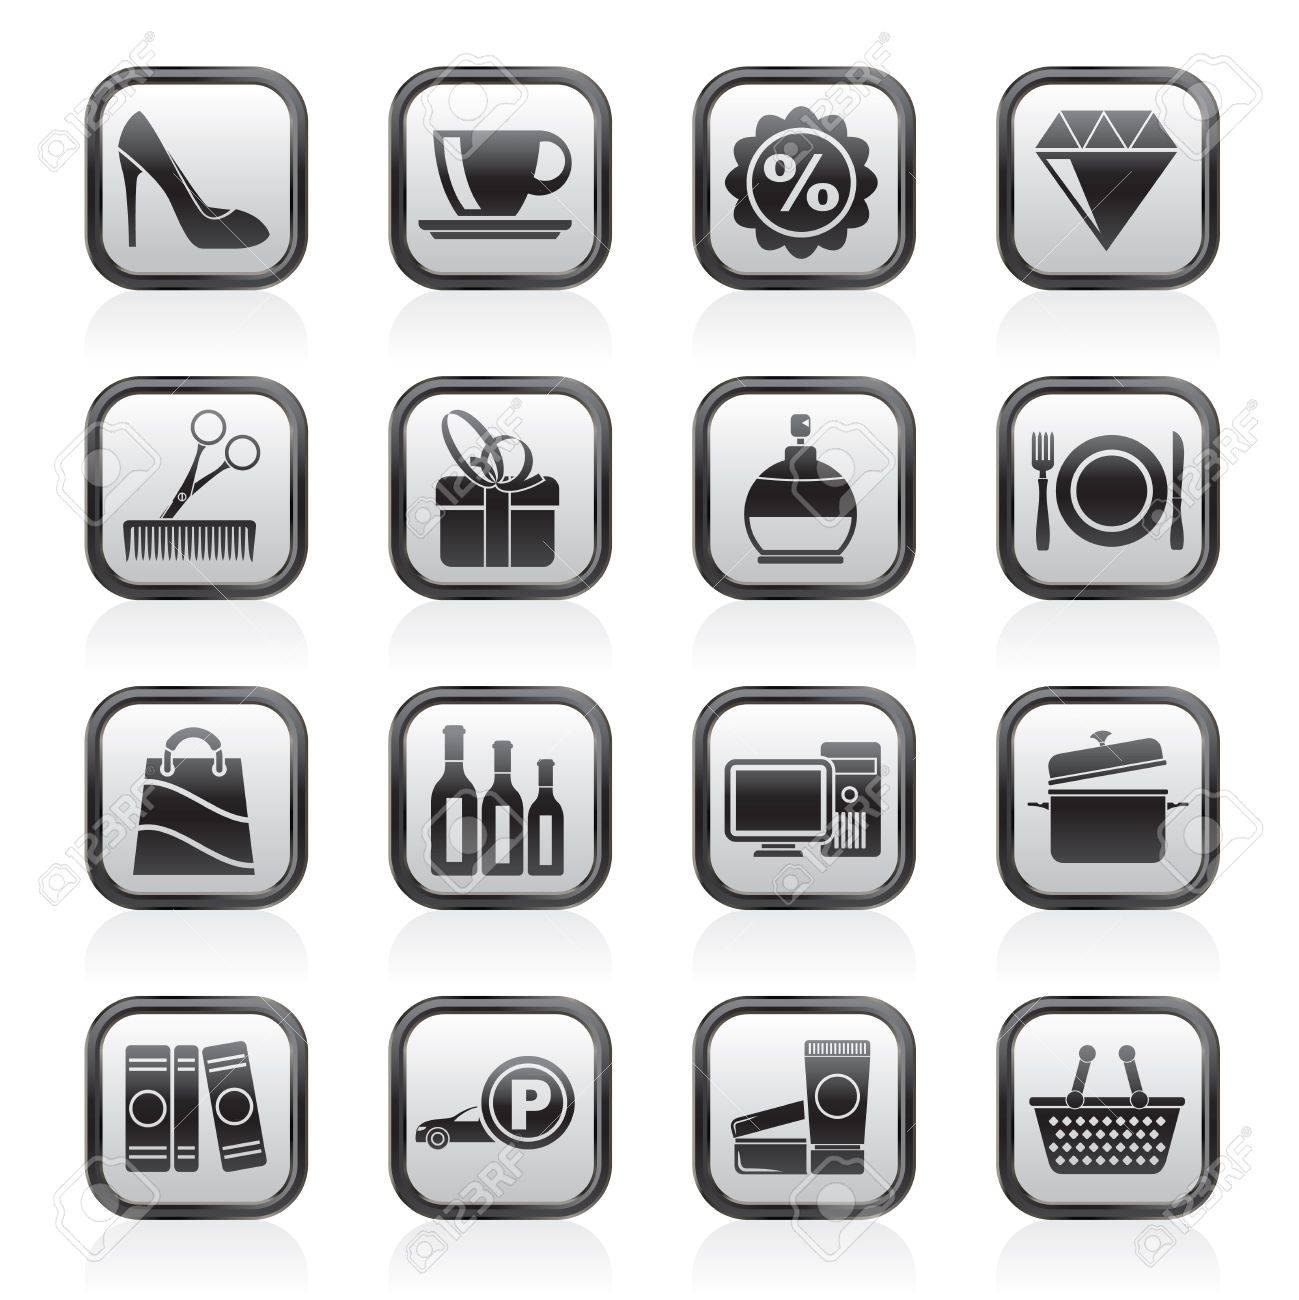 Shopping and mall icons - icon set - 16646549